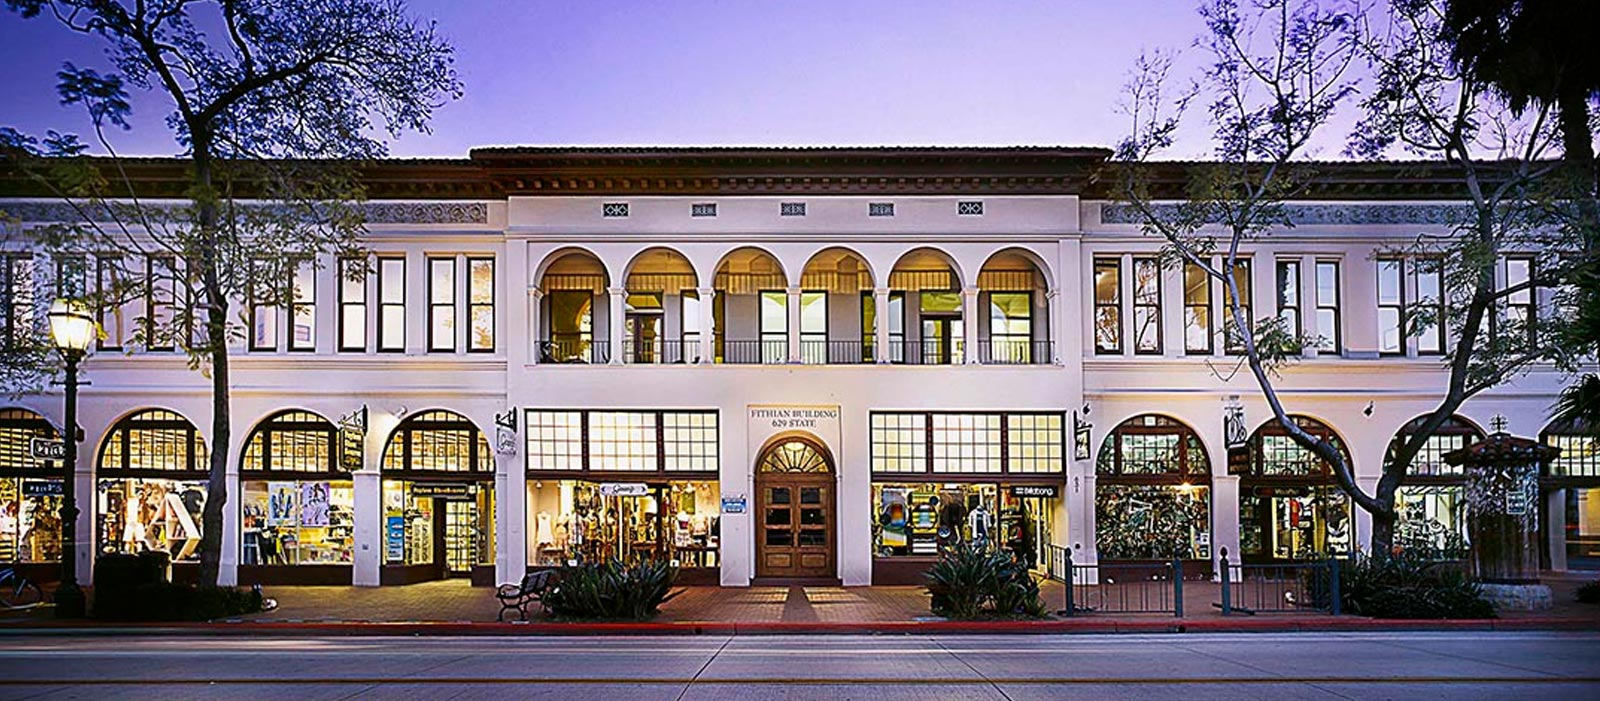 Santa Barbara Commercial Real Estate - Fithian Building